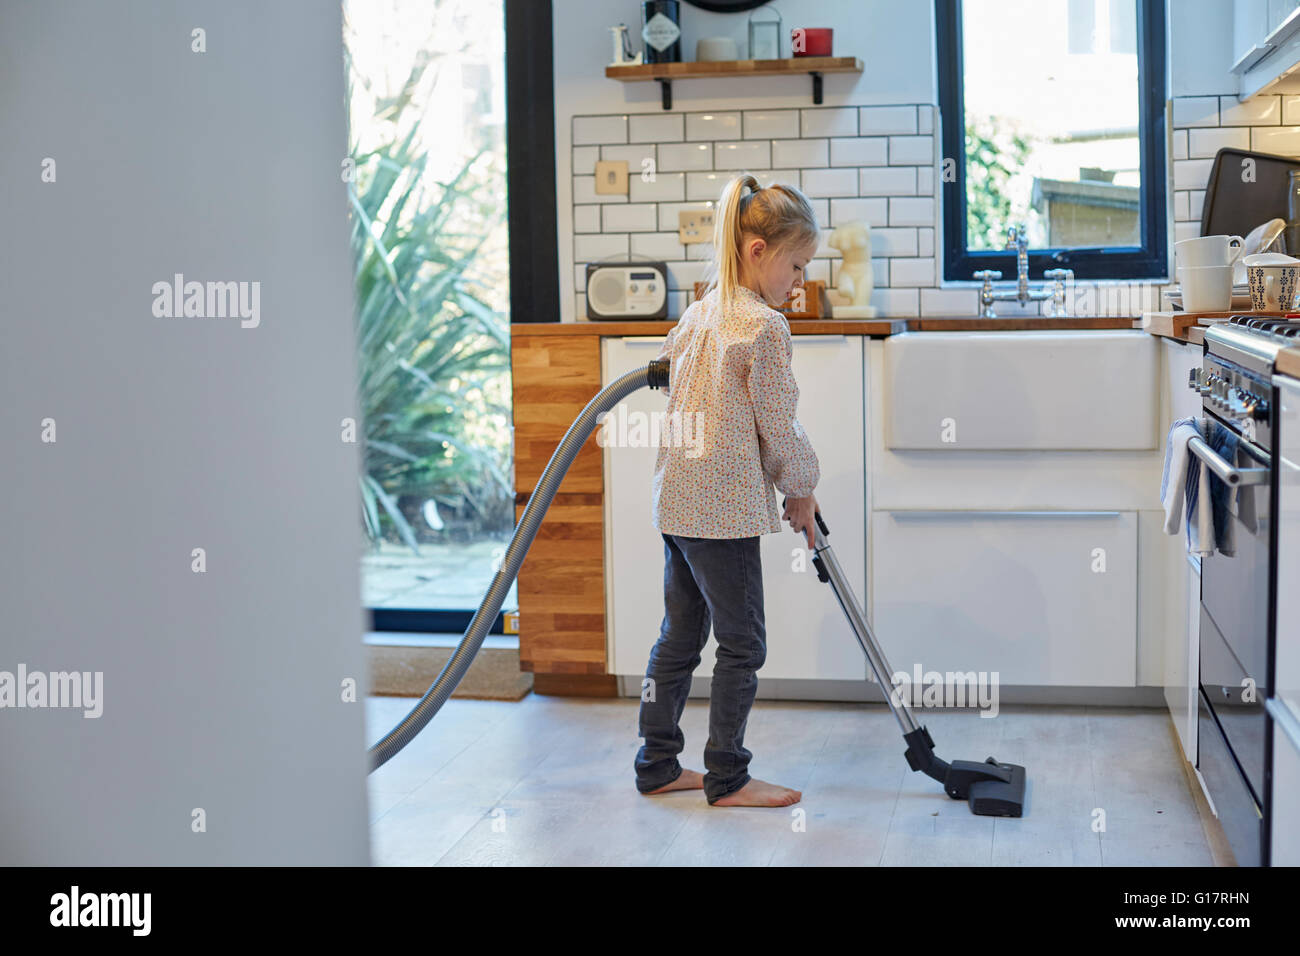 Kitchen Floor Vacuum Girl Vacuuming Kitchen Floor Stock Photo Royalty Free Image